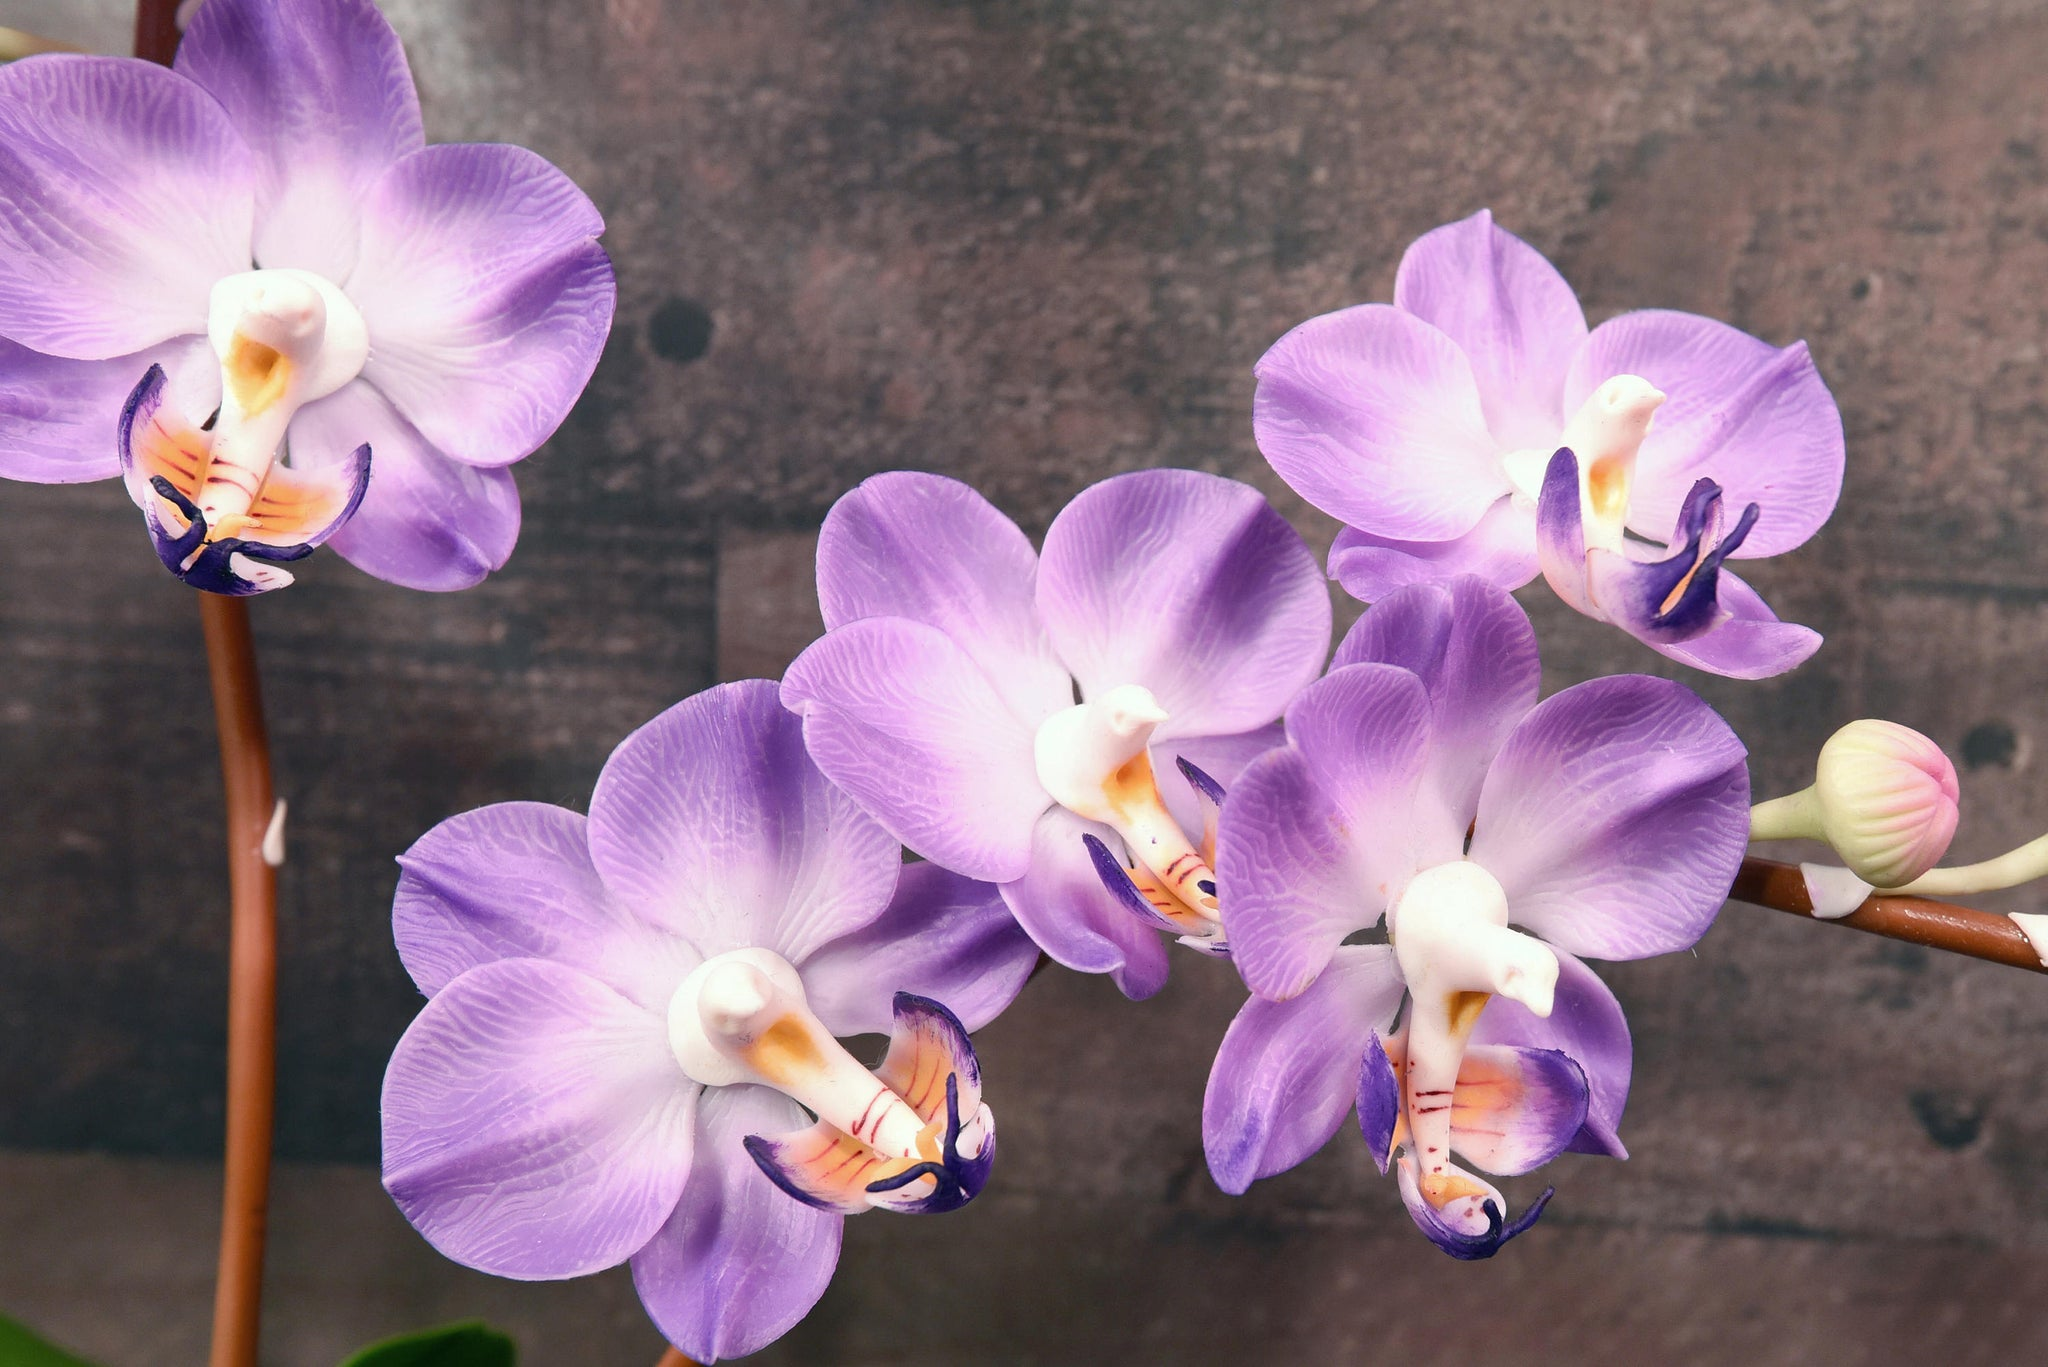 Hand sculpted clay flowers home decor handmade purple three stem hand sculpted clay flowers home decor handmade purple three stem large phalanopsis orchid hand painted flower mightylinksfo